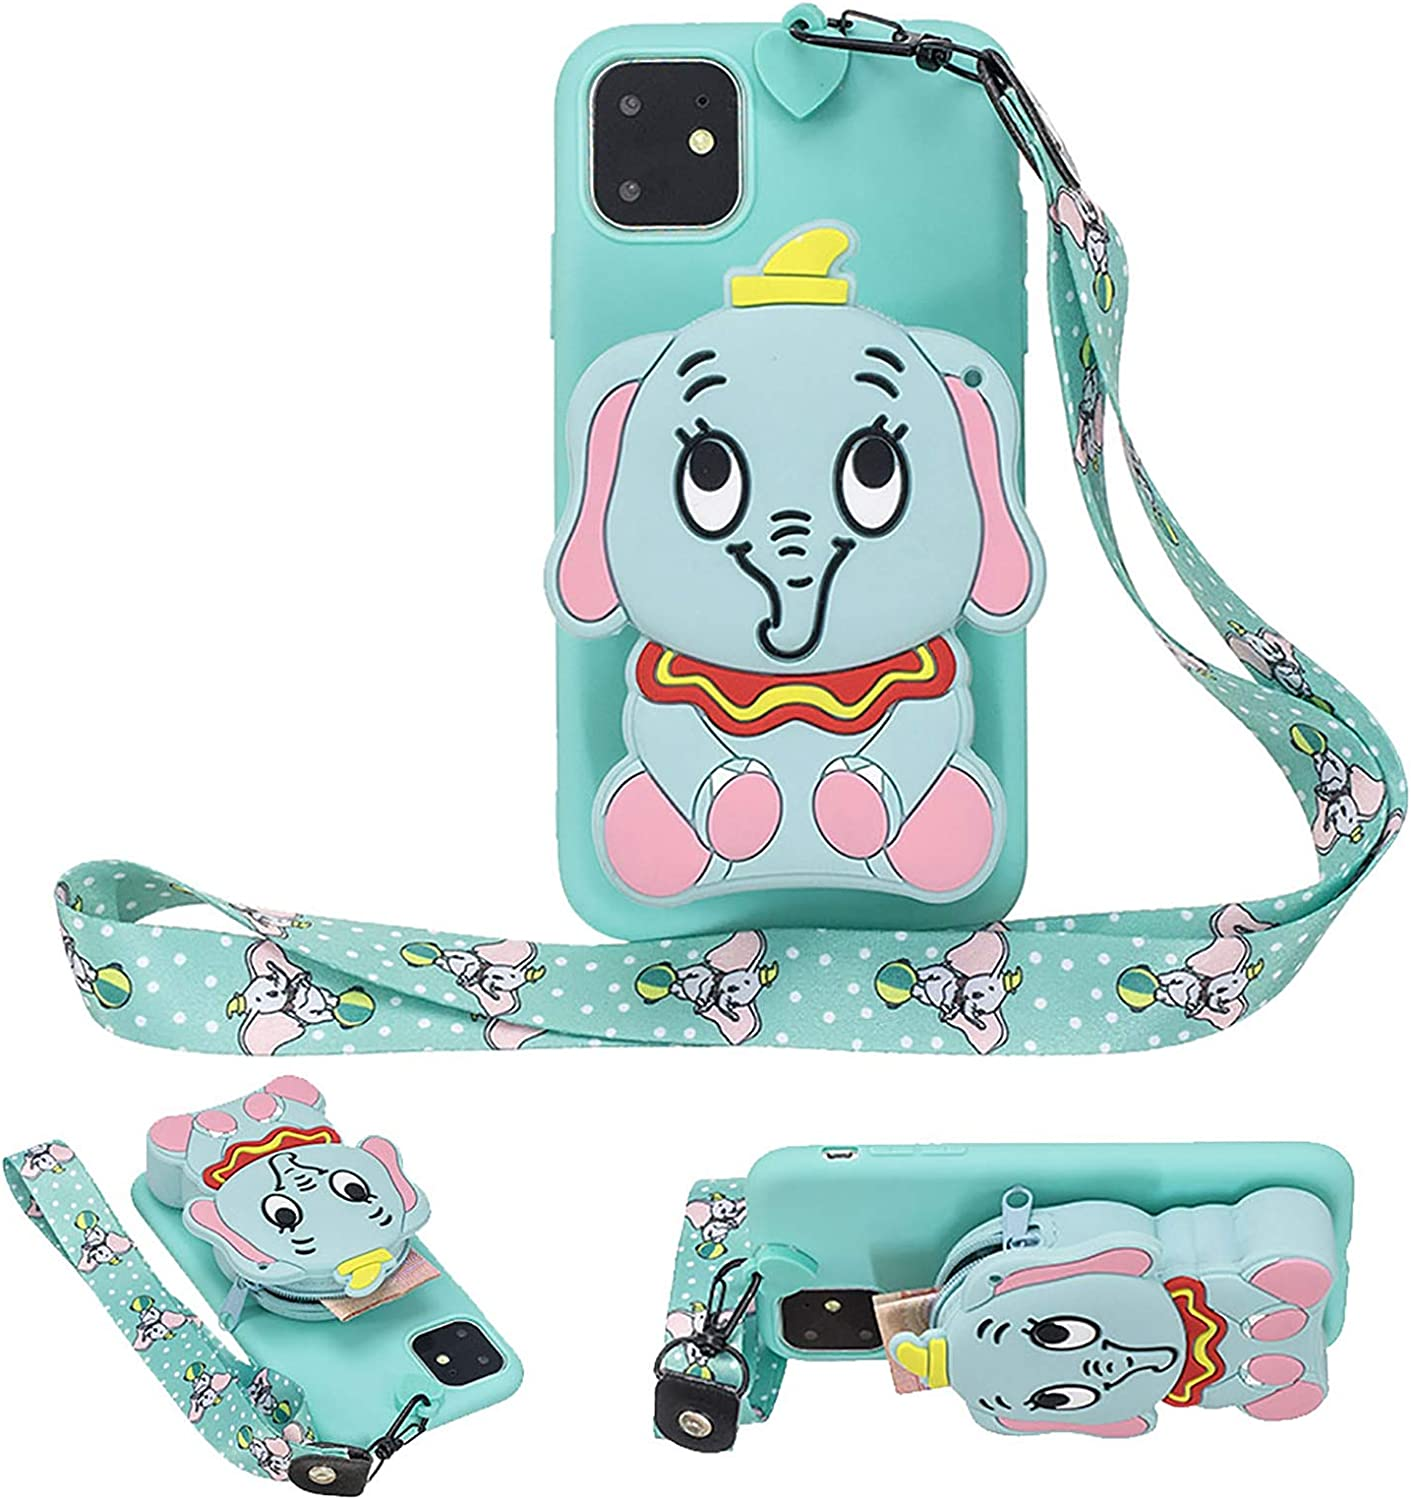 Girlyard for iPhone 13 Mini 5.4 Inch Silicone Case with 3D Cartoon Animal Zipper Wallet Purse Stand Holder Back Cover and Long Detachable Lanyard Strap Phone Case for Kids Girls, Blue Elephant